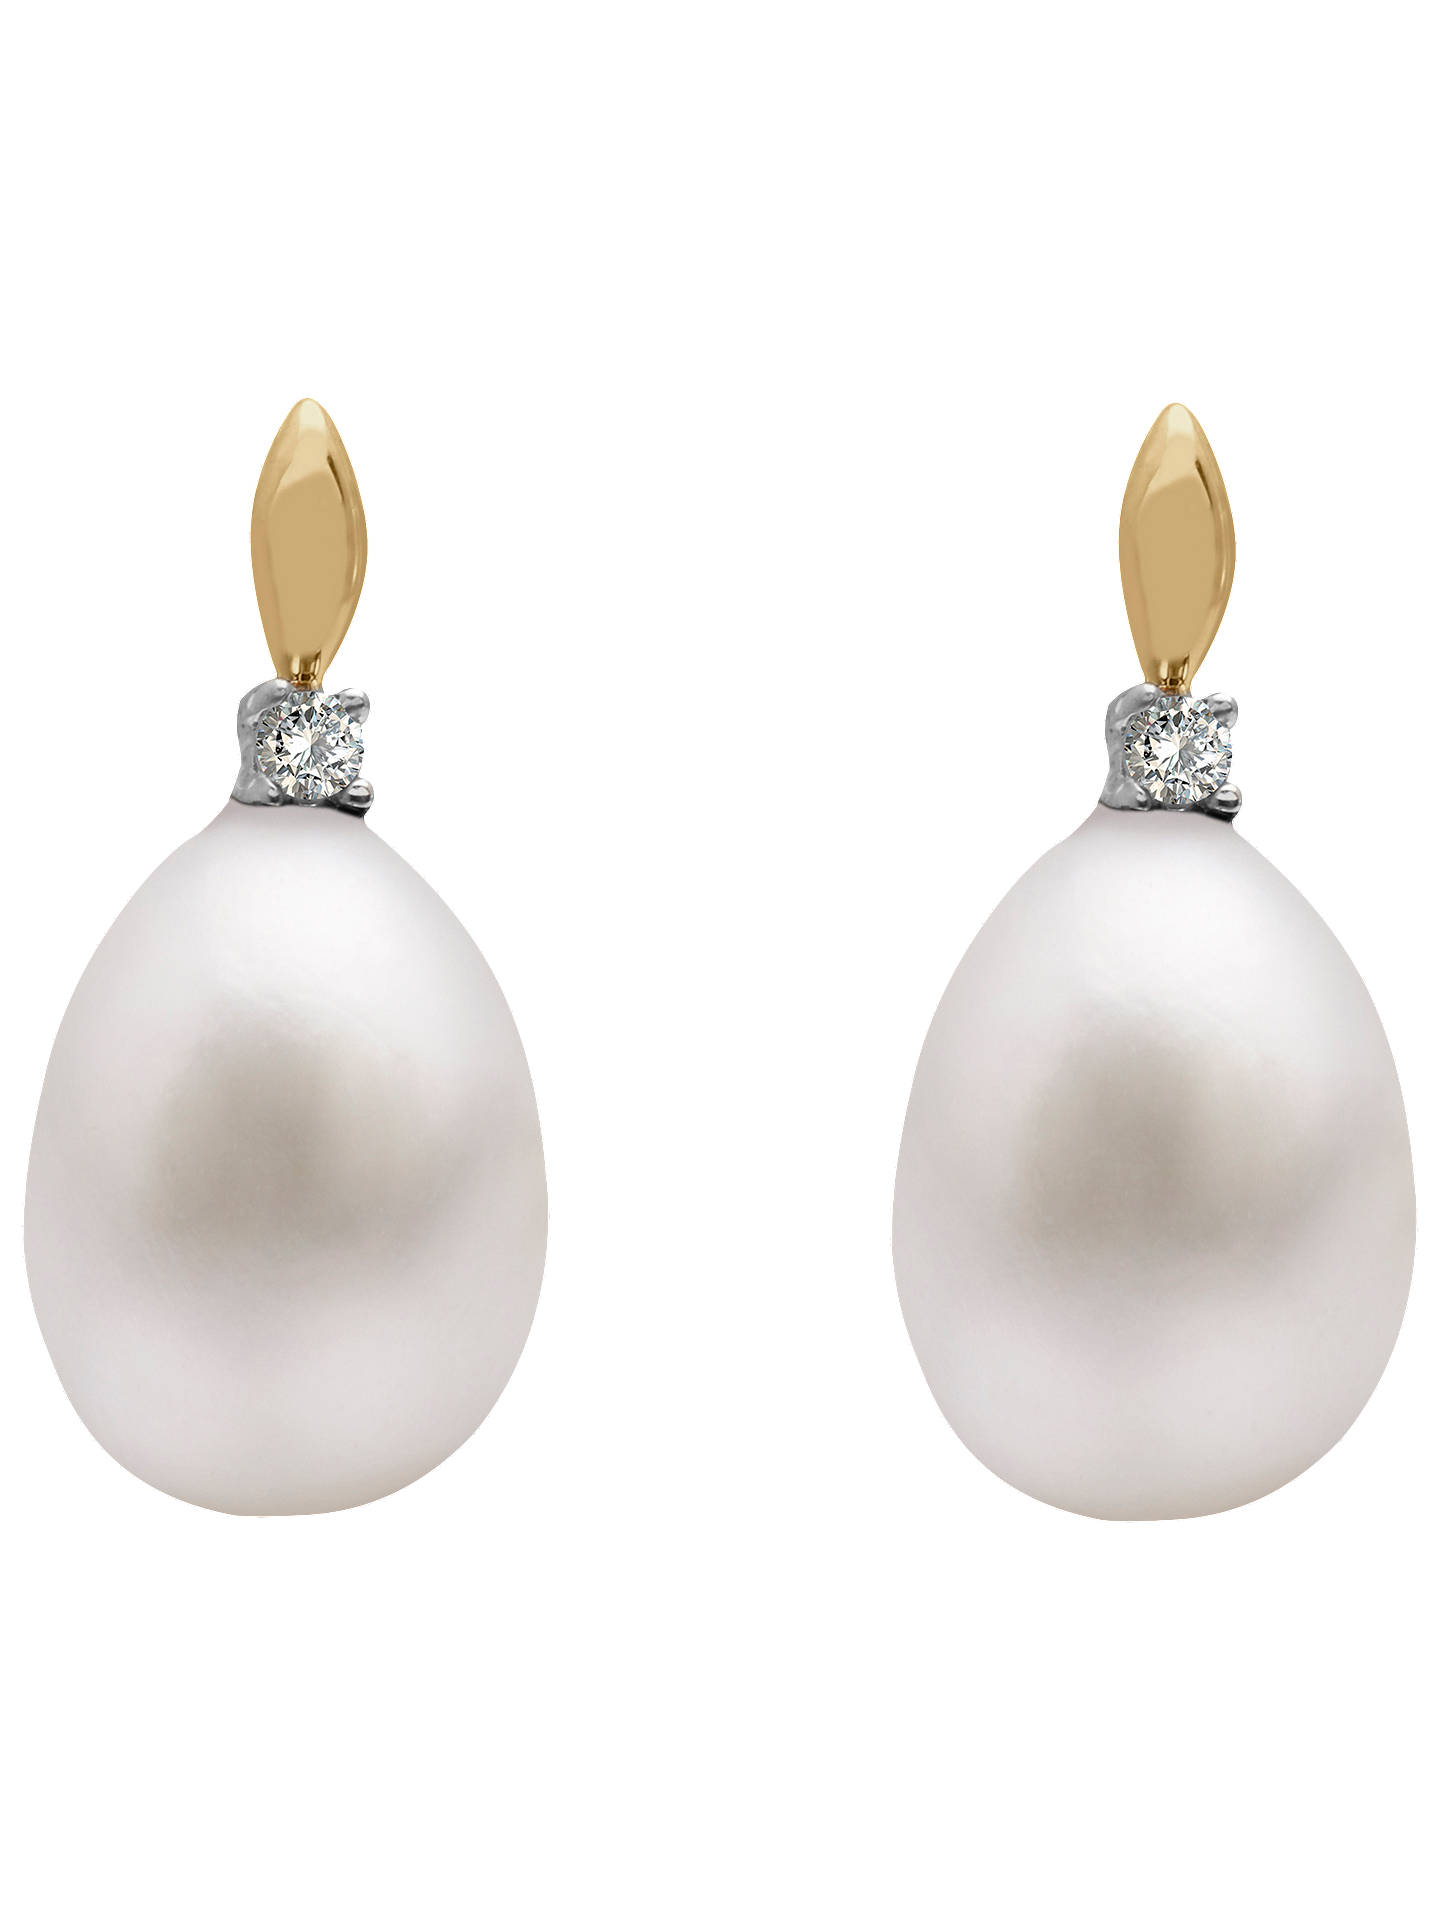 BuyA B Davis 9ct Gold Freshwater Pearl Solitaire Diamond Drop Earrings, White Online at johnlewis.com